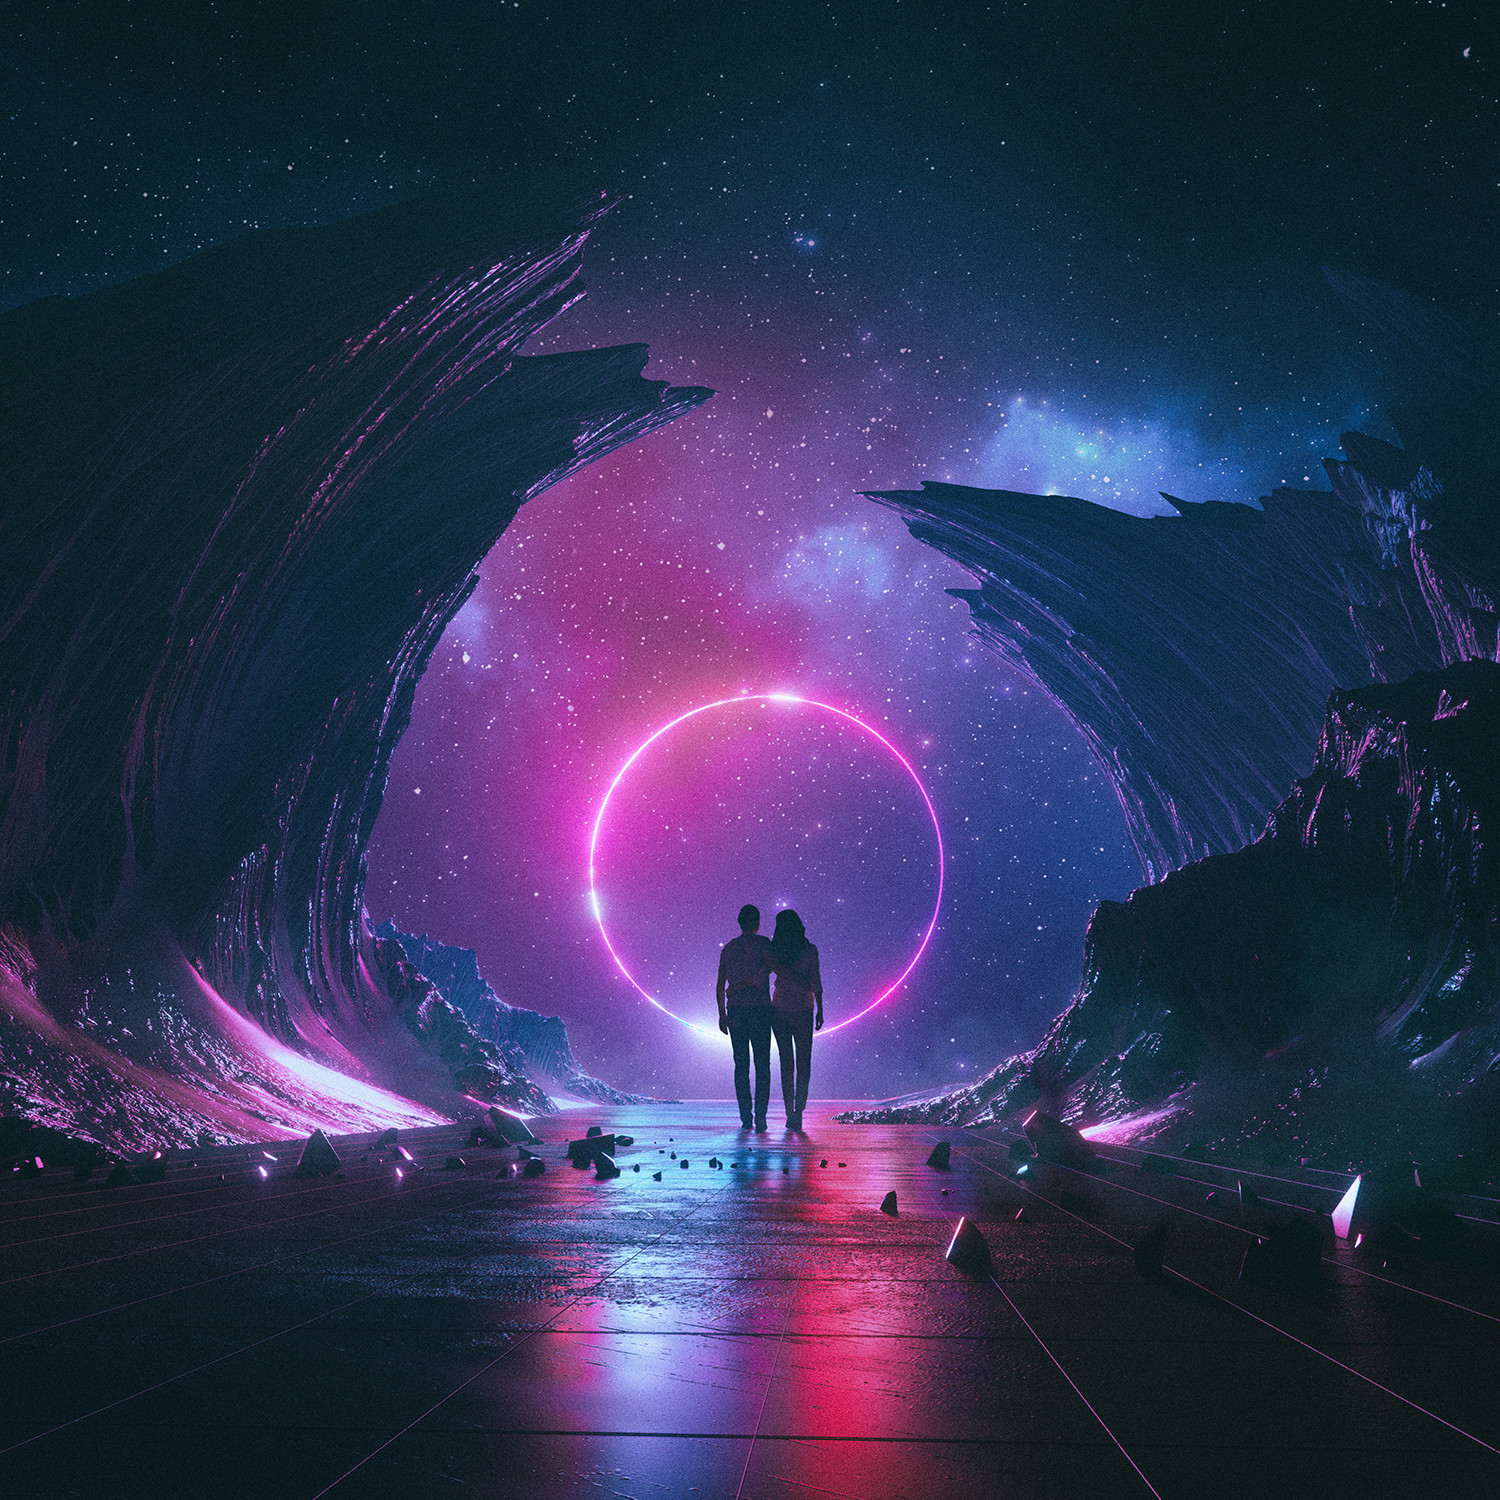 General 1500x1500 beeple digital art 3D neon ravine couple stars mountains men women space circle ground rocks